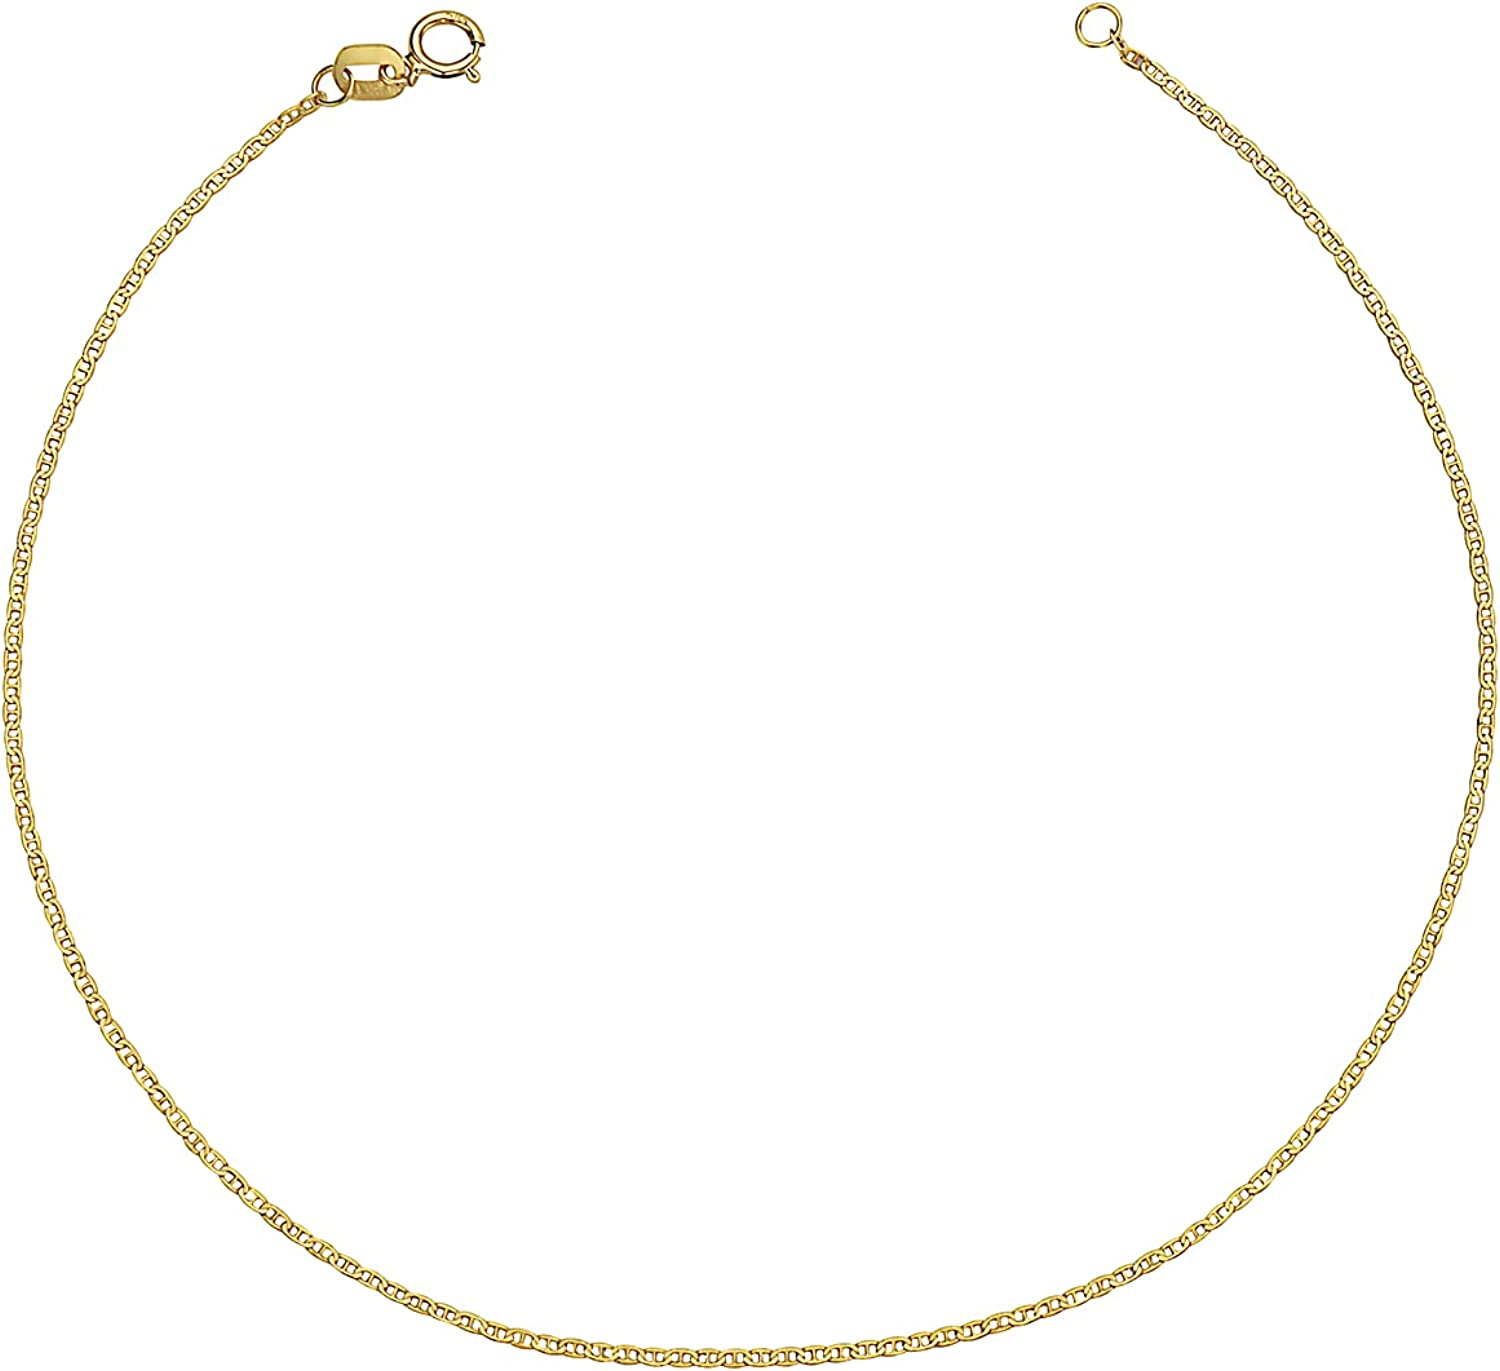 14K Solid Yellow Gold 1MM Flat Mariner Chain Anklet - Sturdy Spring Ring Closure - 9